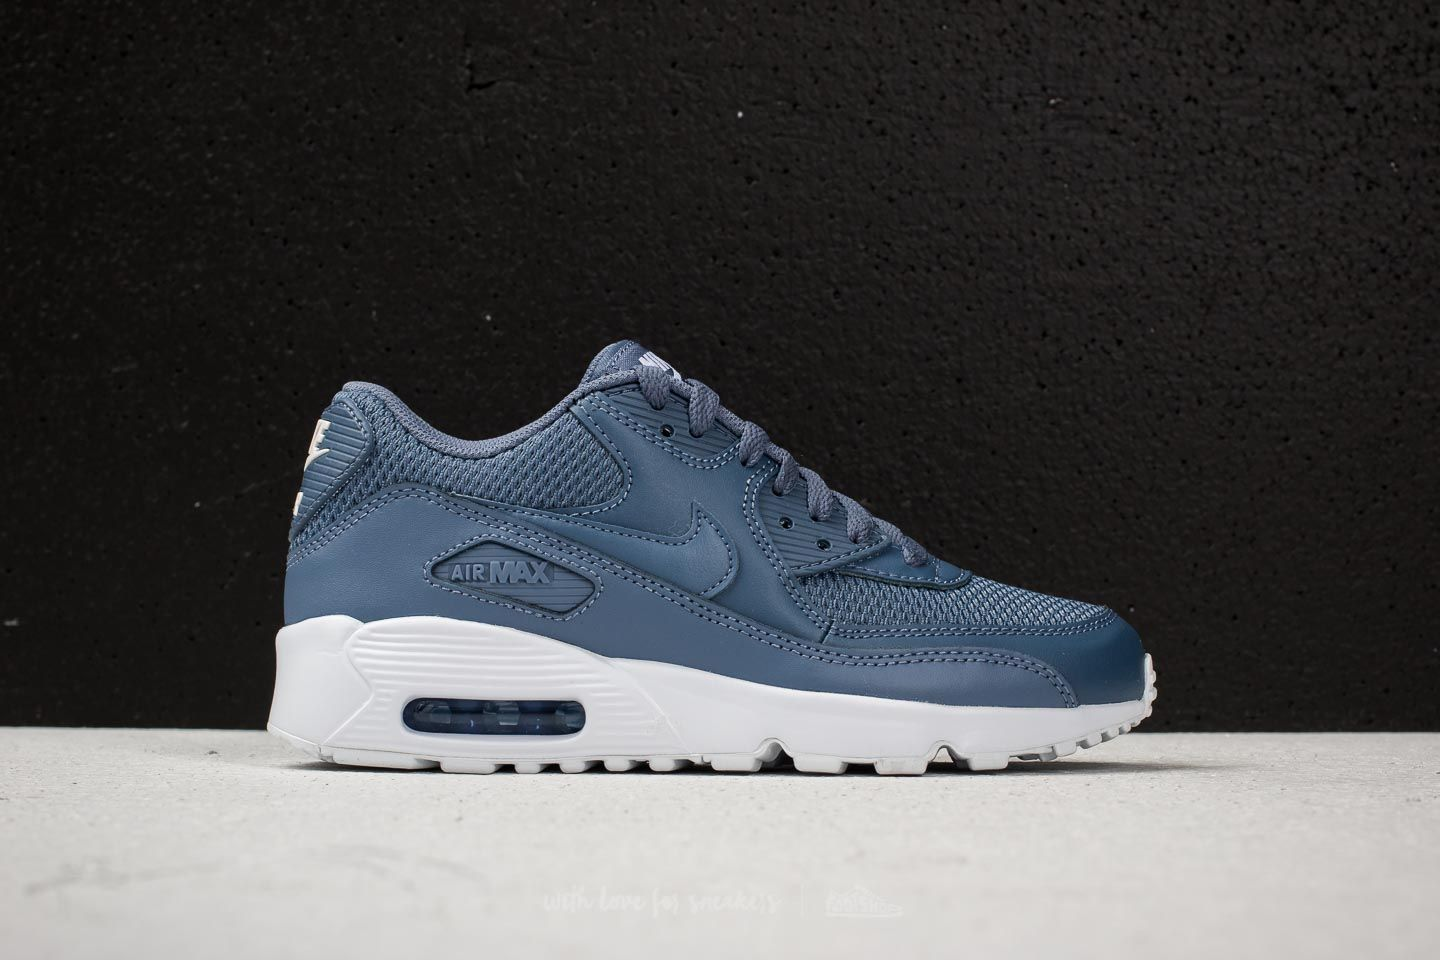 separation shoes 06ca4 12c1a Nike Air Max 90 Mesh (GS) Diffused Blue/ Diffused Blue ...